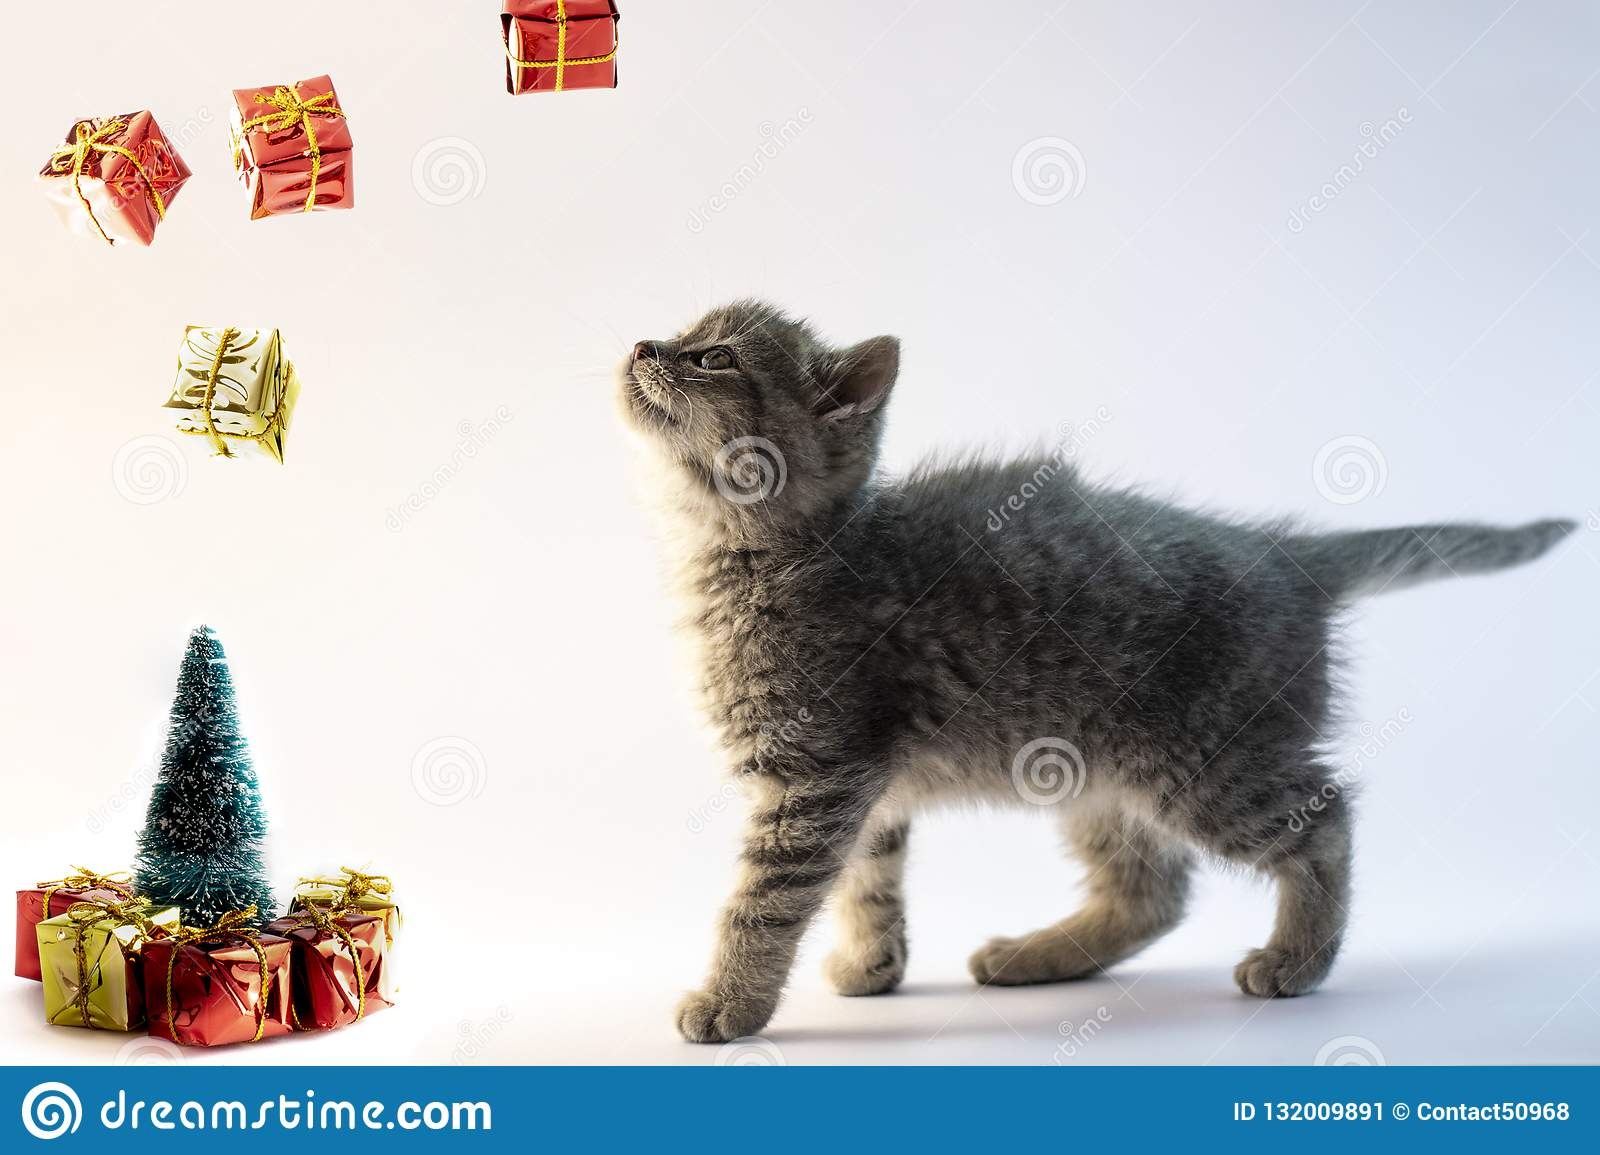 Cute gray cat looking to the falling presents from the air